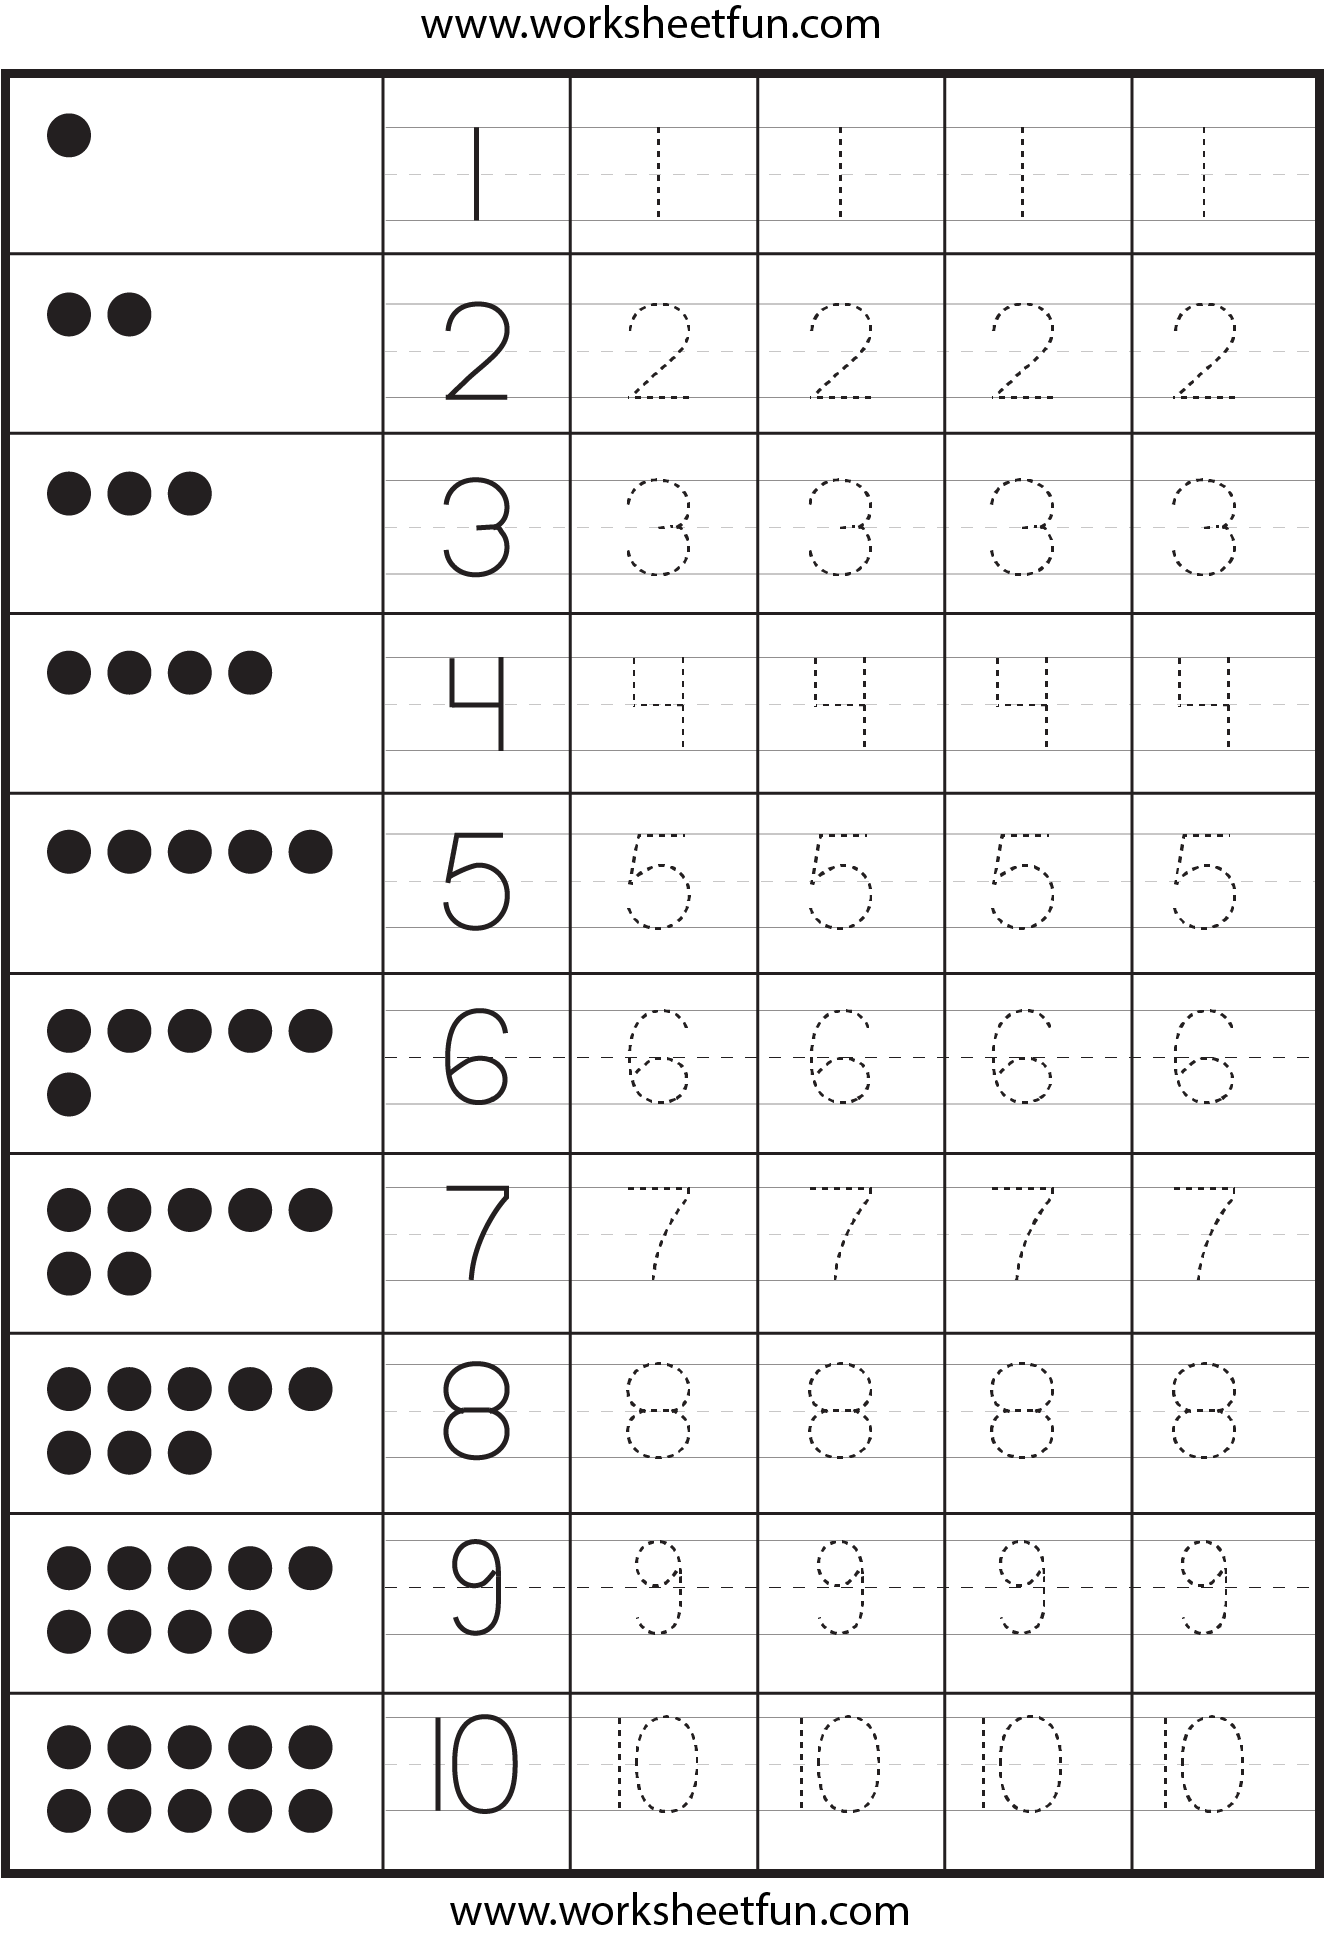 Worksheets Number Tracing Worksheets tons of tracing number and letter practice handwriting free printable worksheets worksheetfun for preschool kindergarten grade tracing